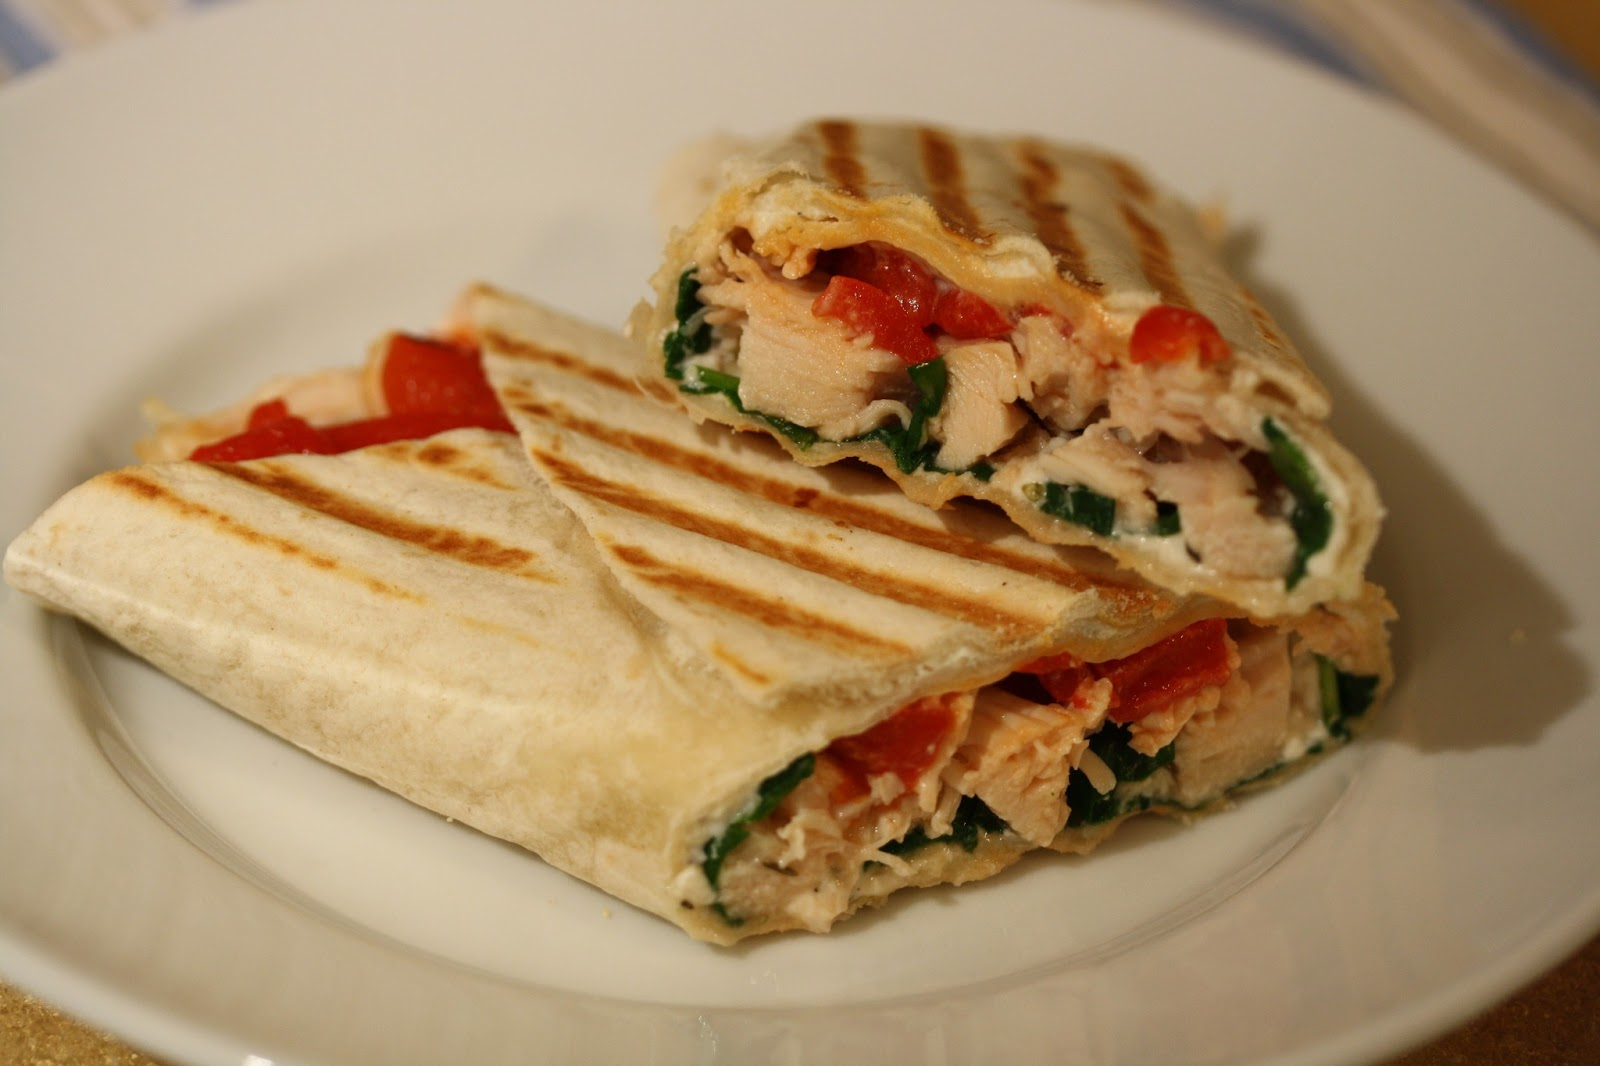 Hot Dinner Happy Home Chicken And Red Pepper Wrap With